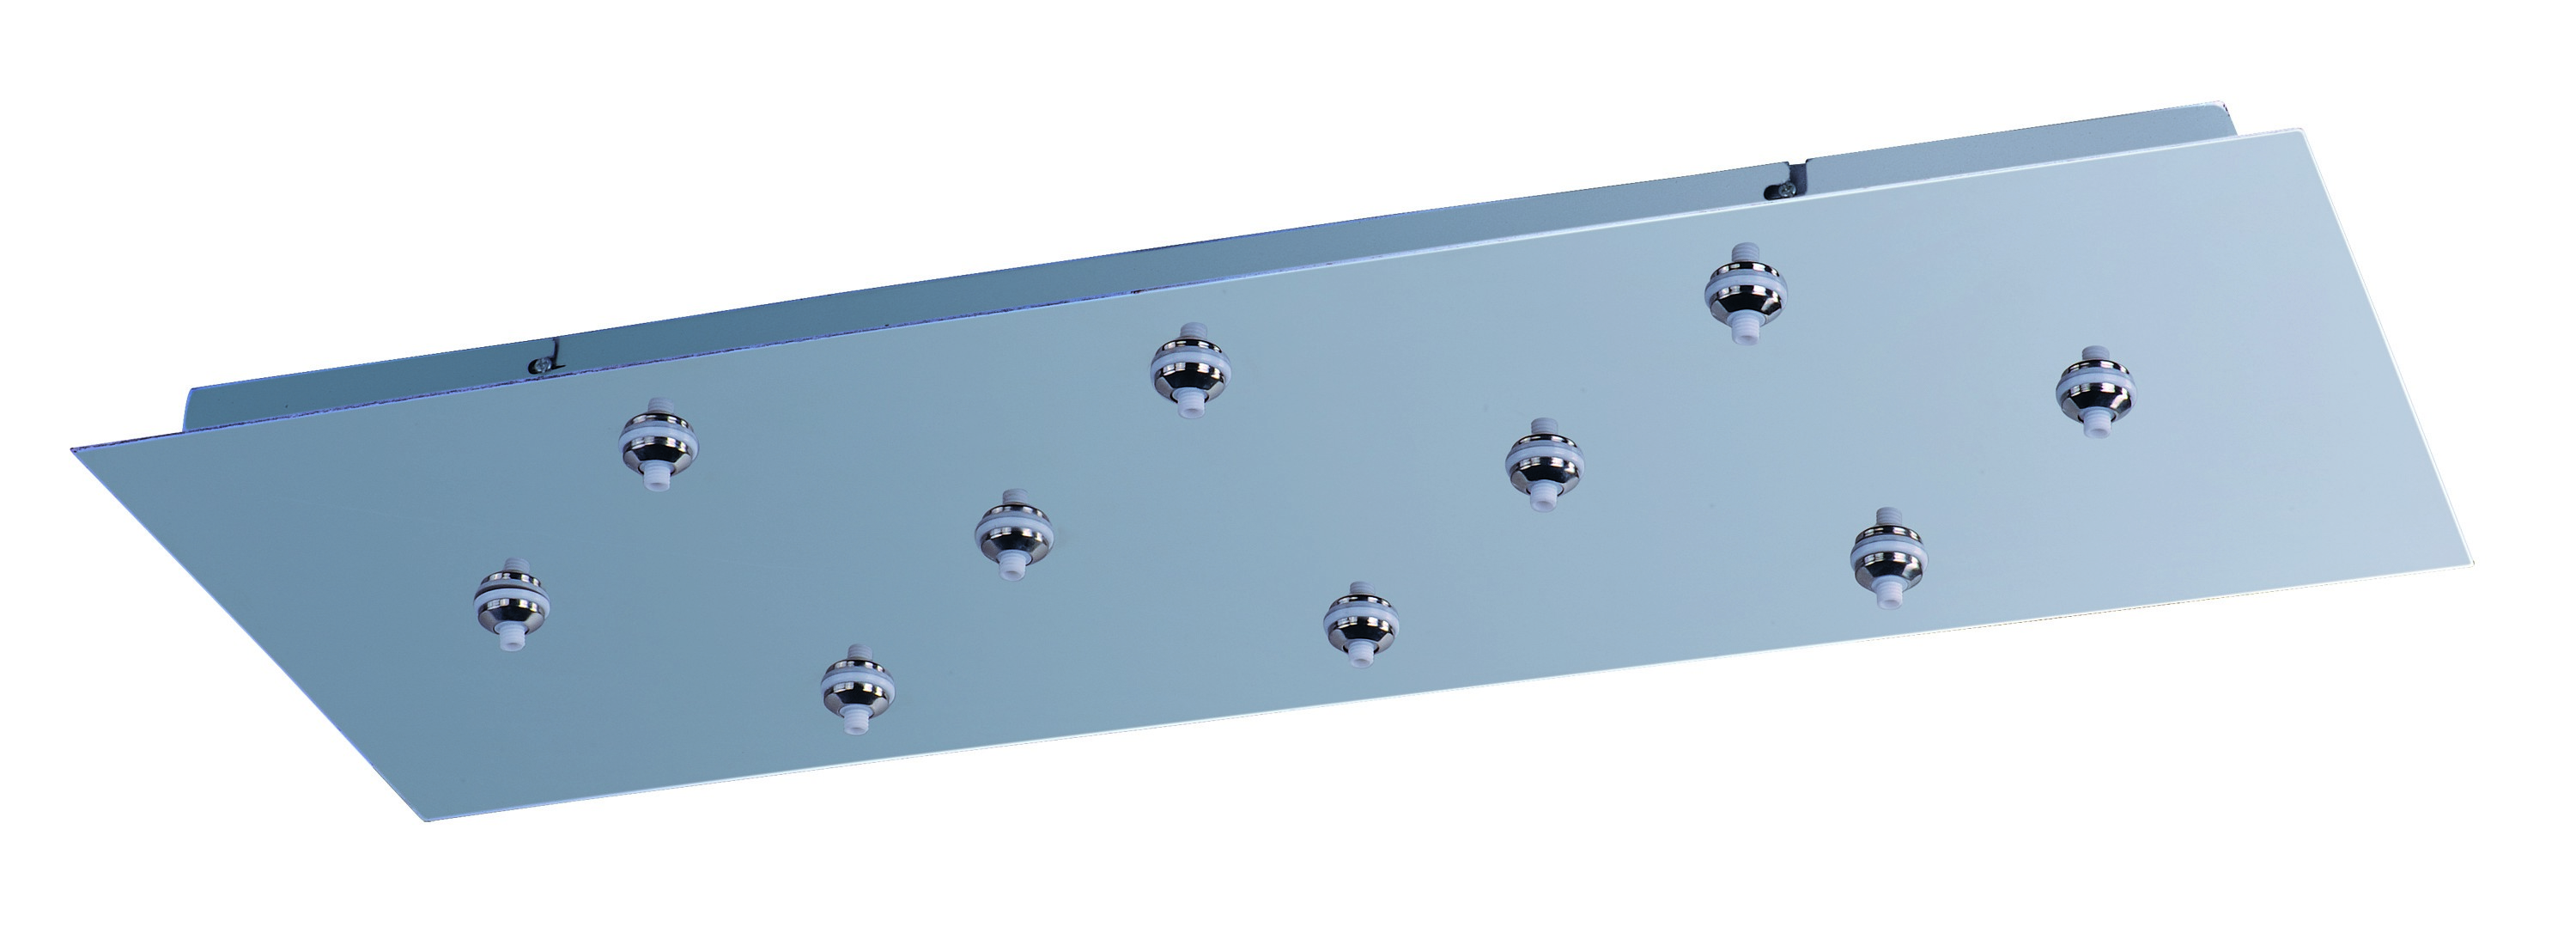 Canopy from the RapidJack LED collection by ET2 EC85025 PC